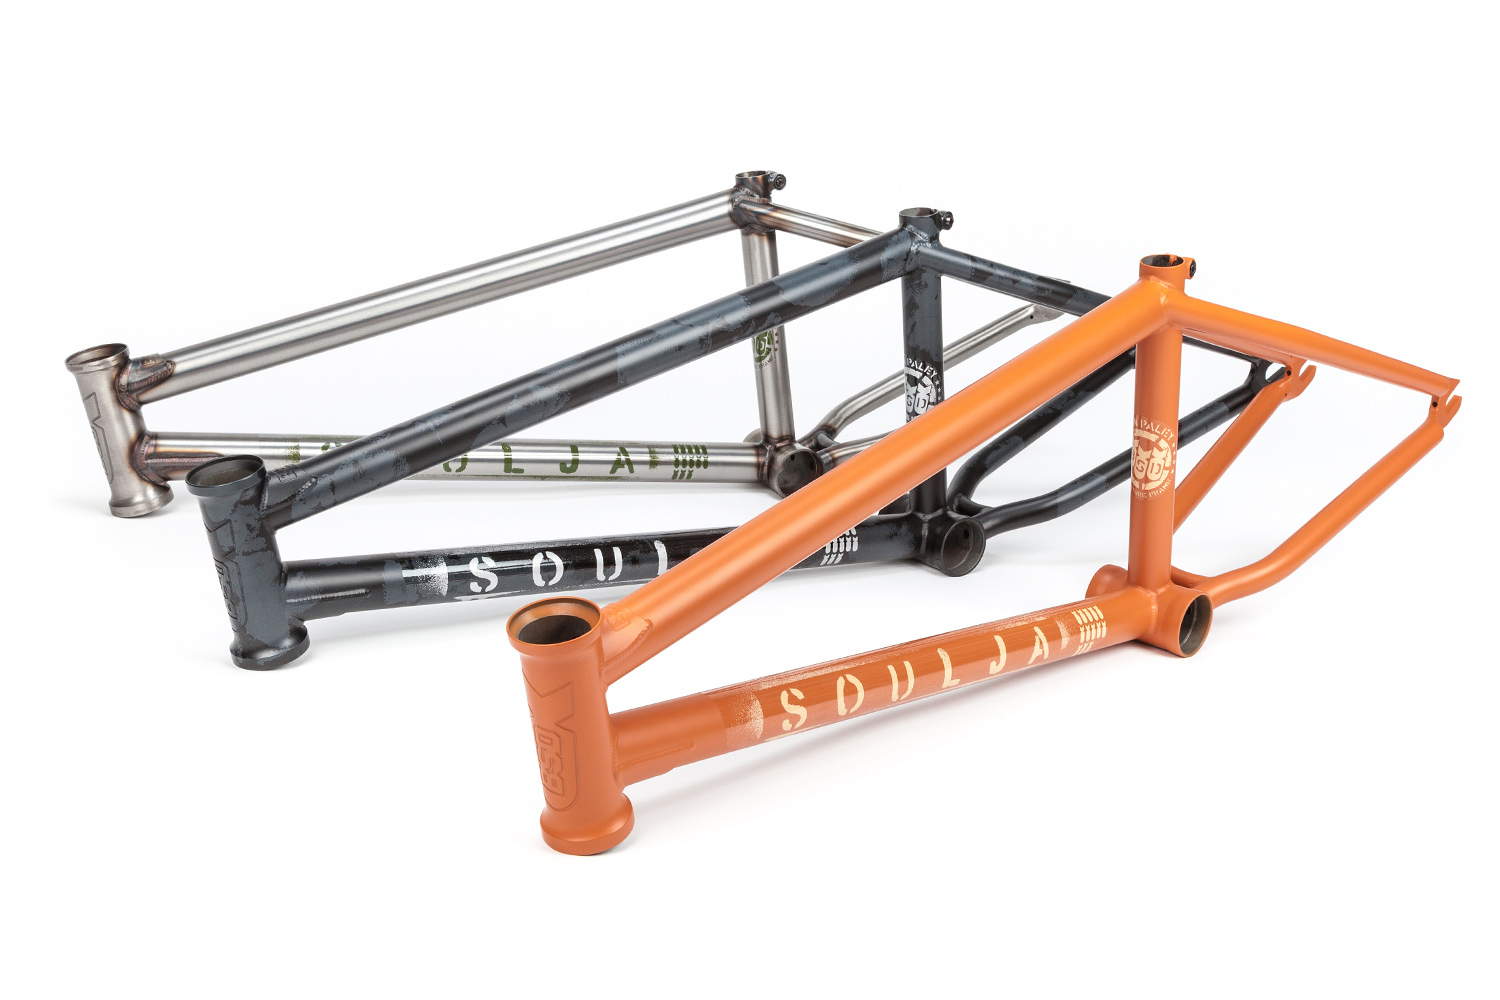 The new 2019 Soulja frame - check the Urban Camo paint job out!